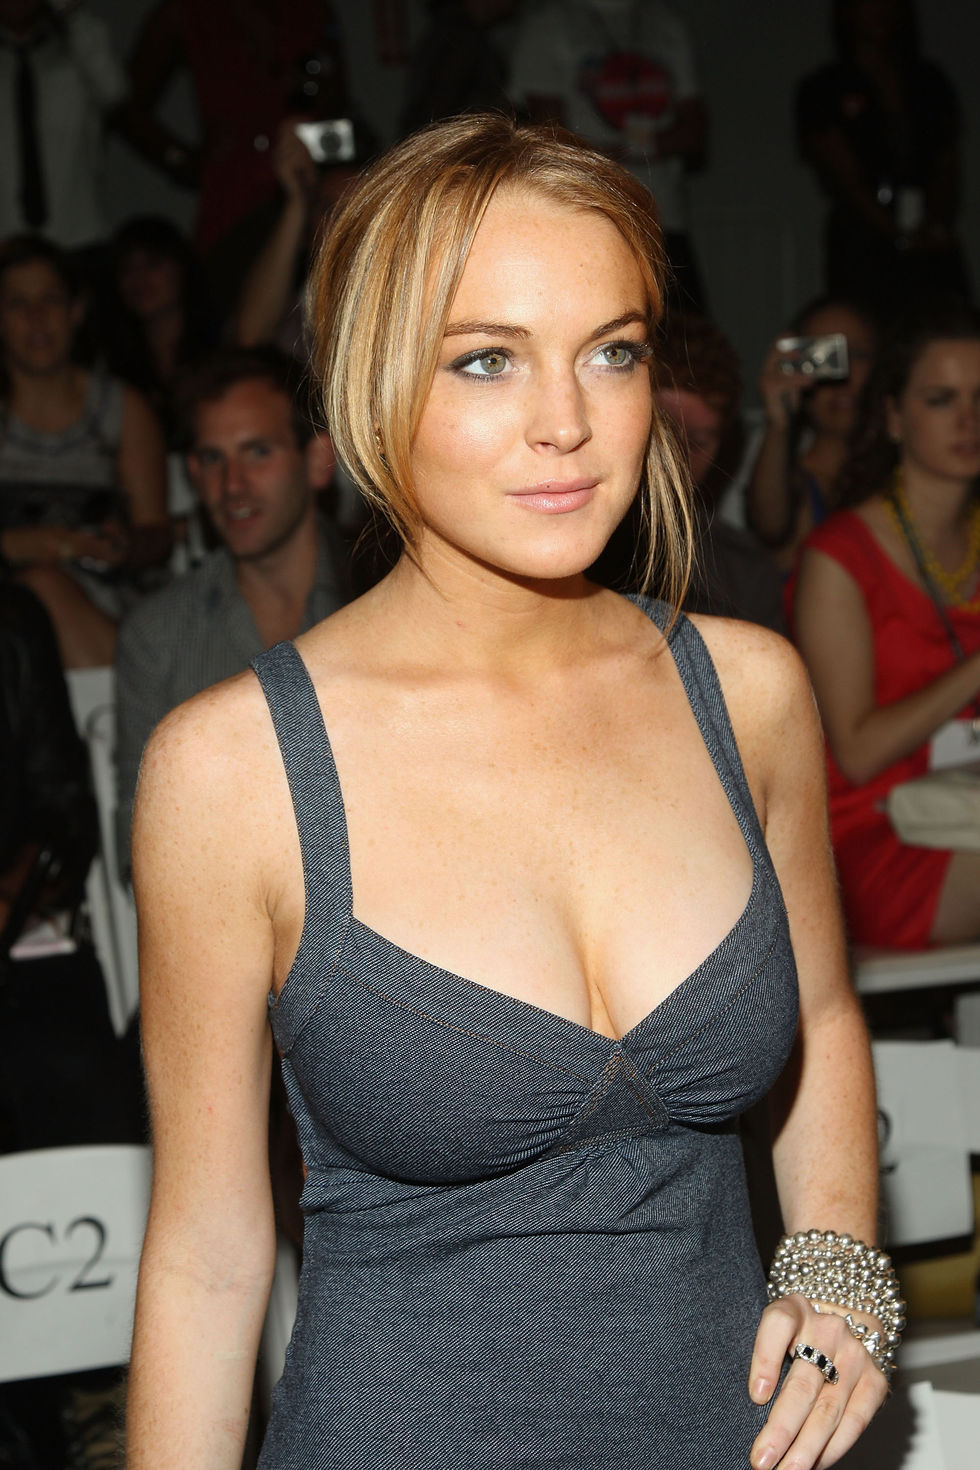 lindsay-lohan-charlotte-ronson-spring-2009-fashion-show-in-new-york-01